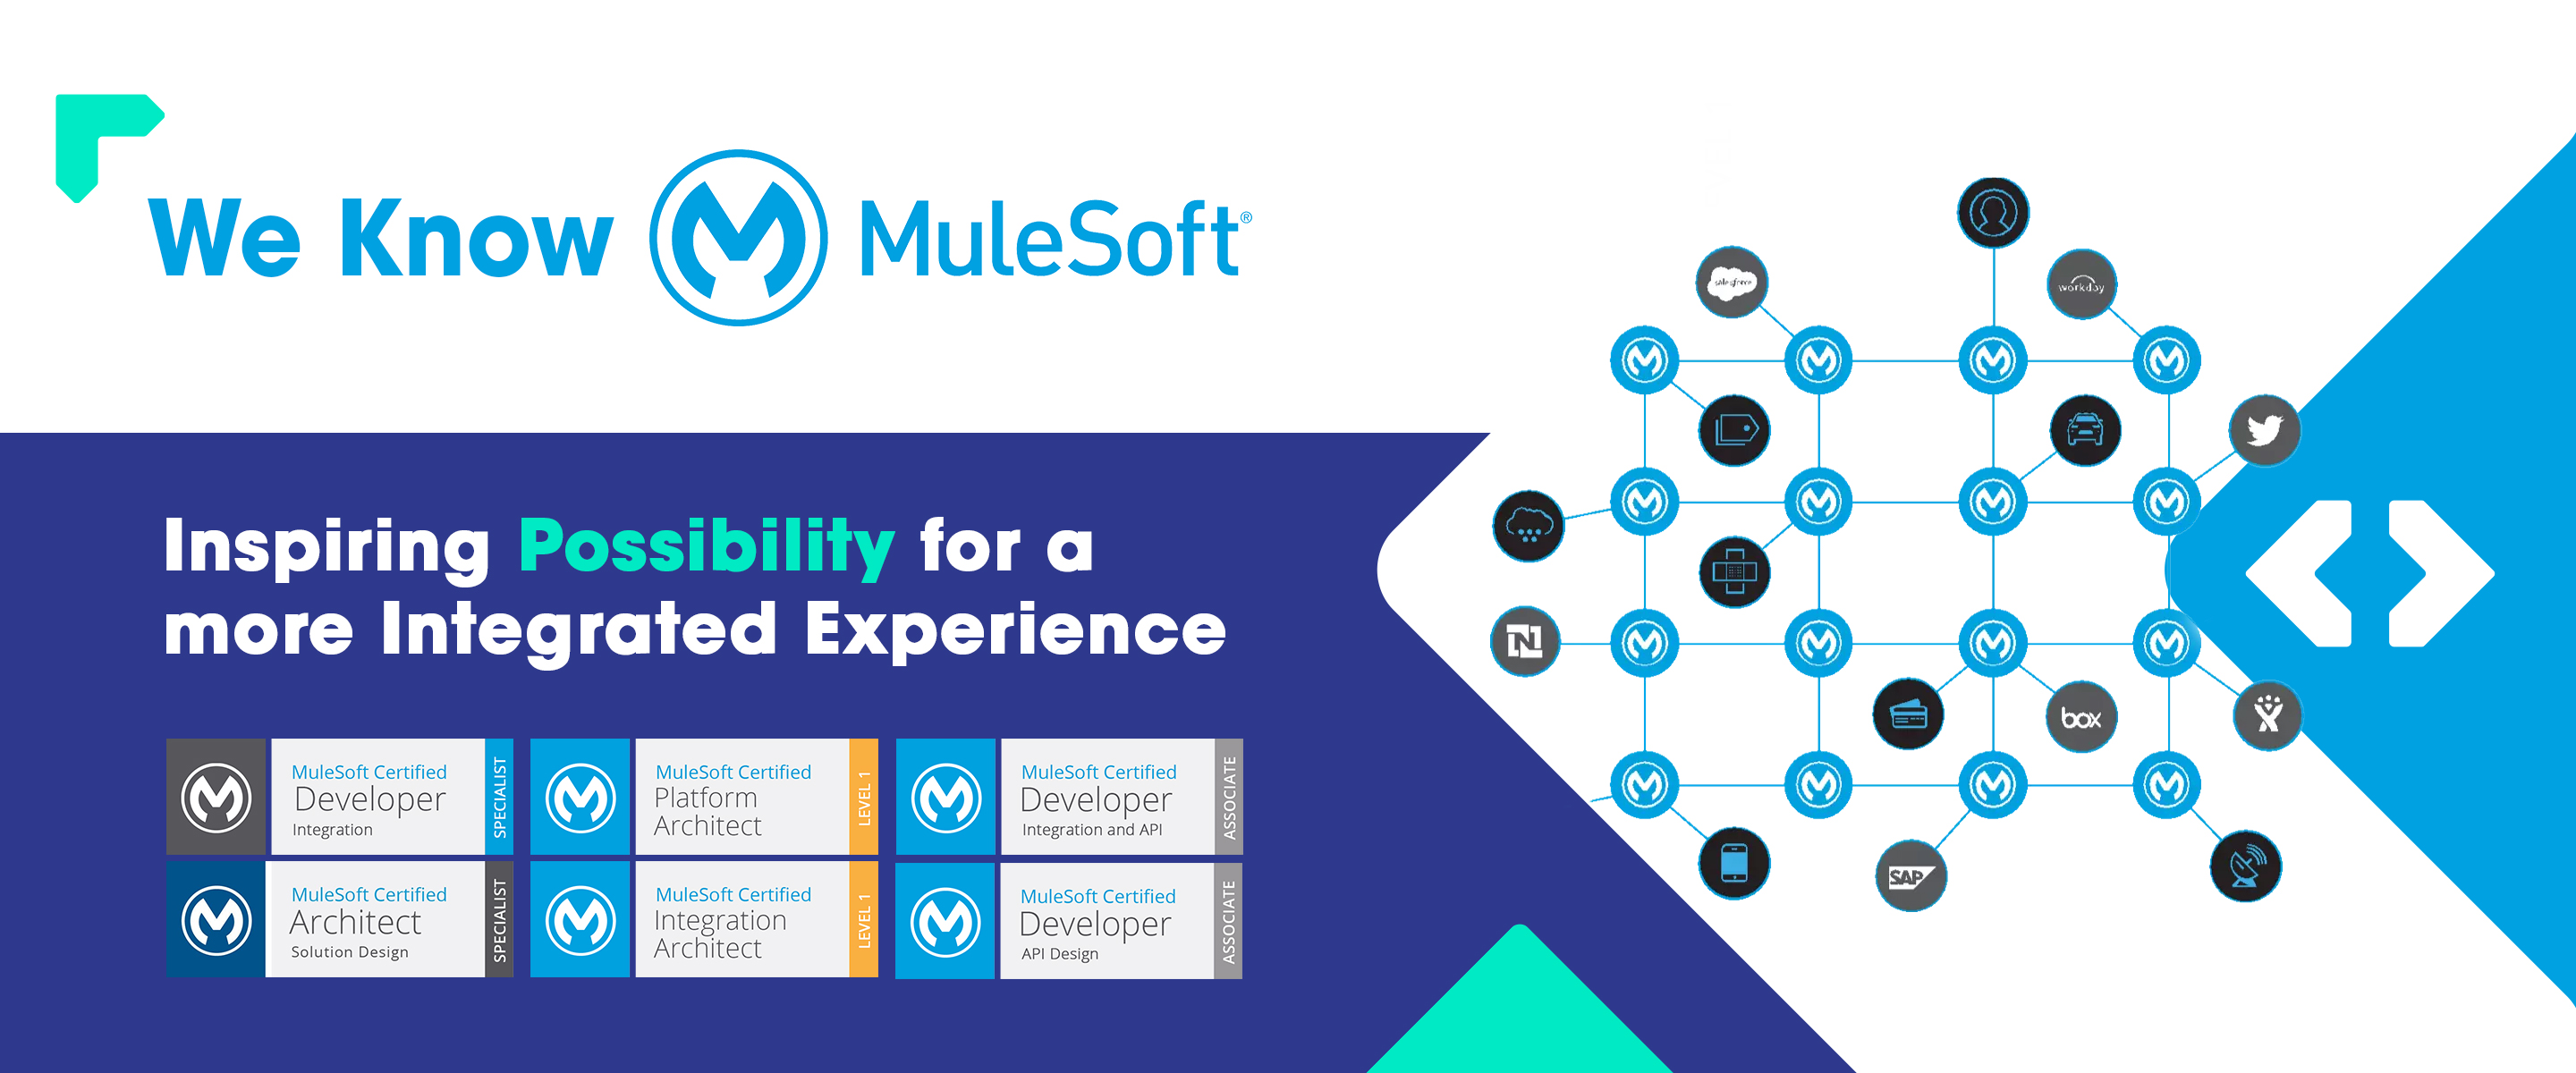 mulesoft developers, mulesoft development, mulesoft experts, mulesoft developer, mulesoft expert